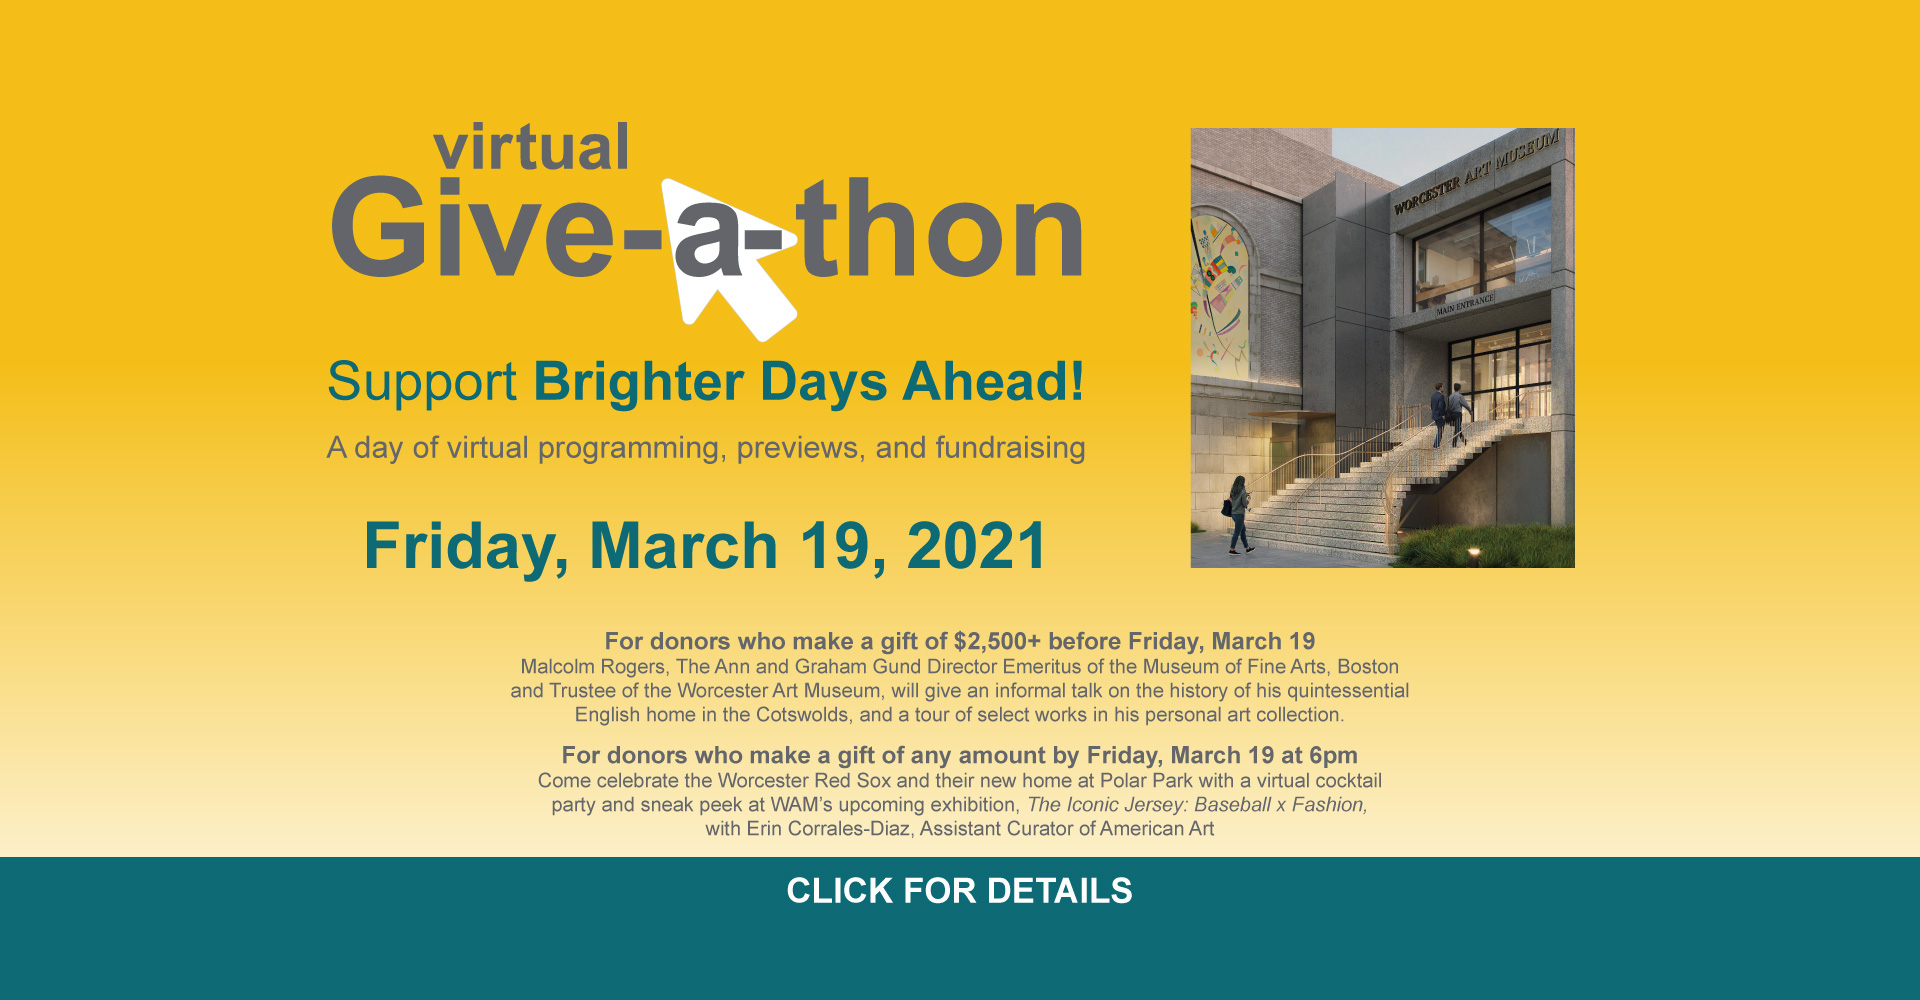 Give-a-thon 2021